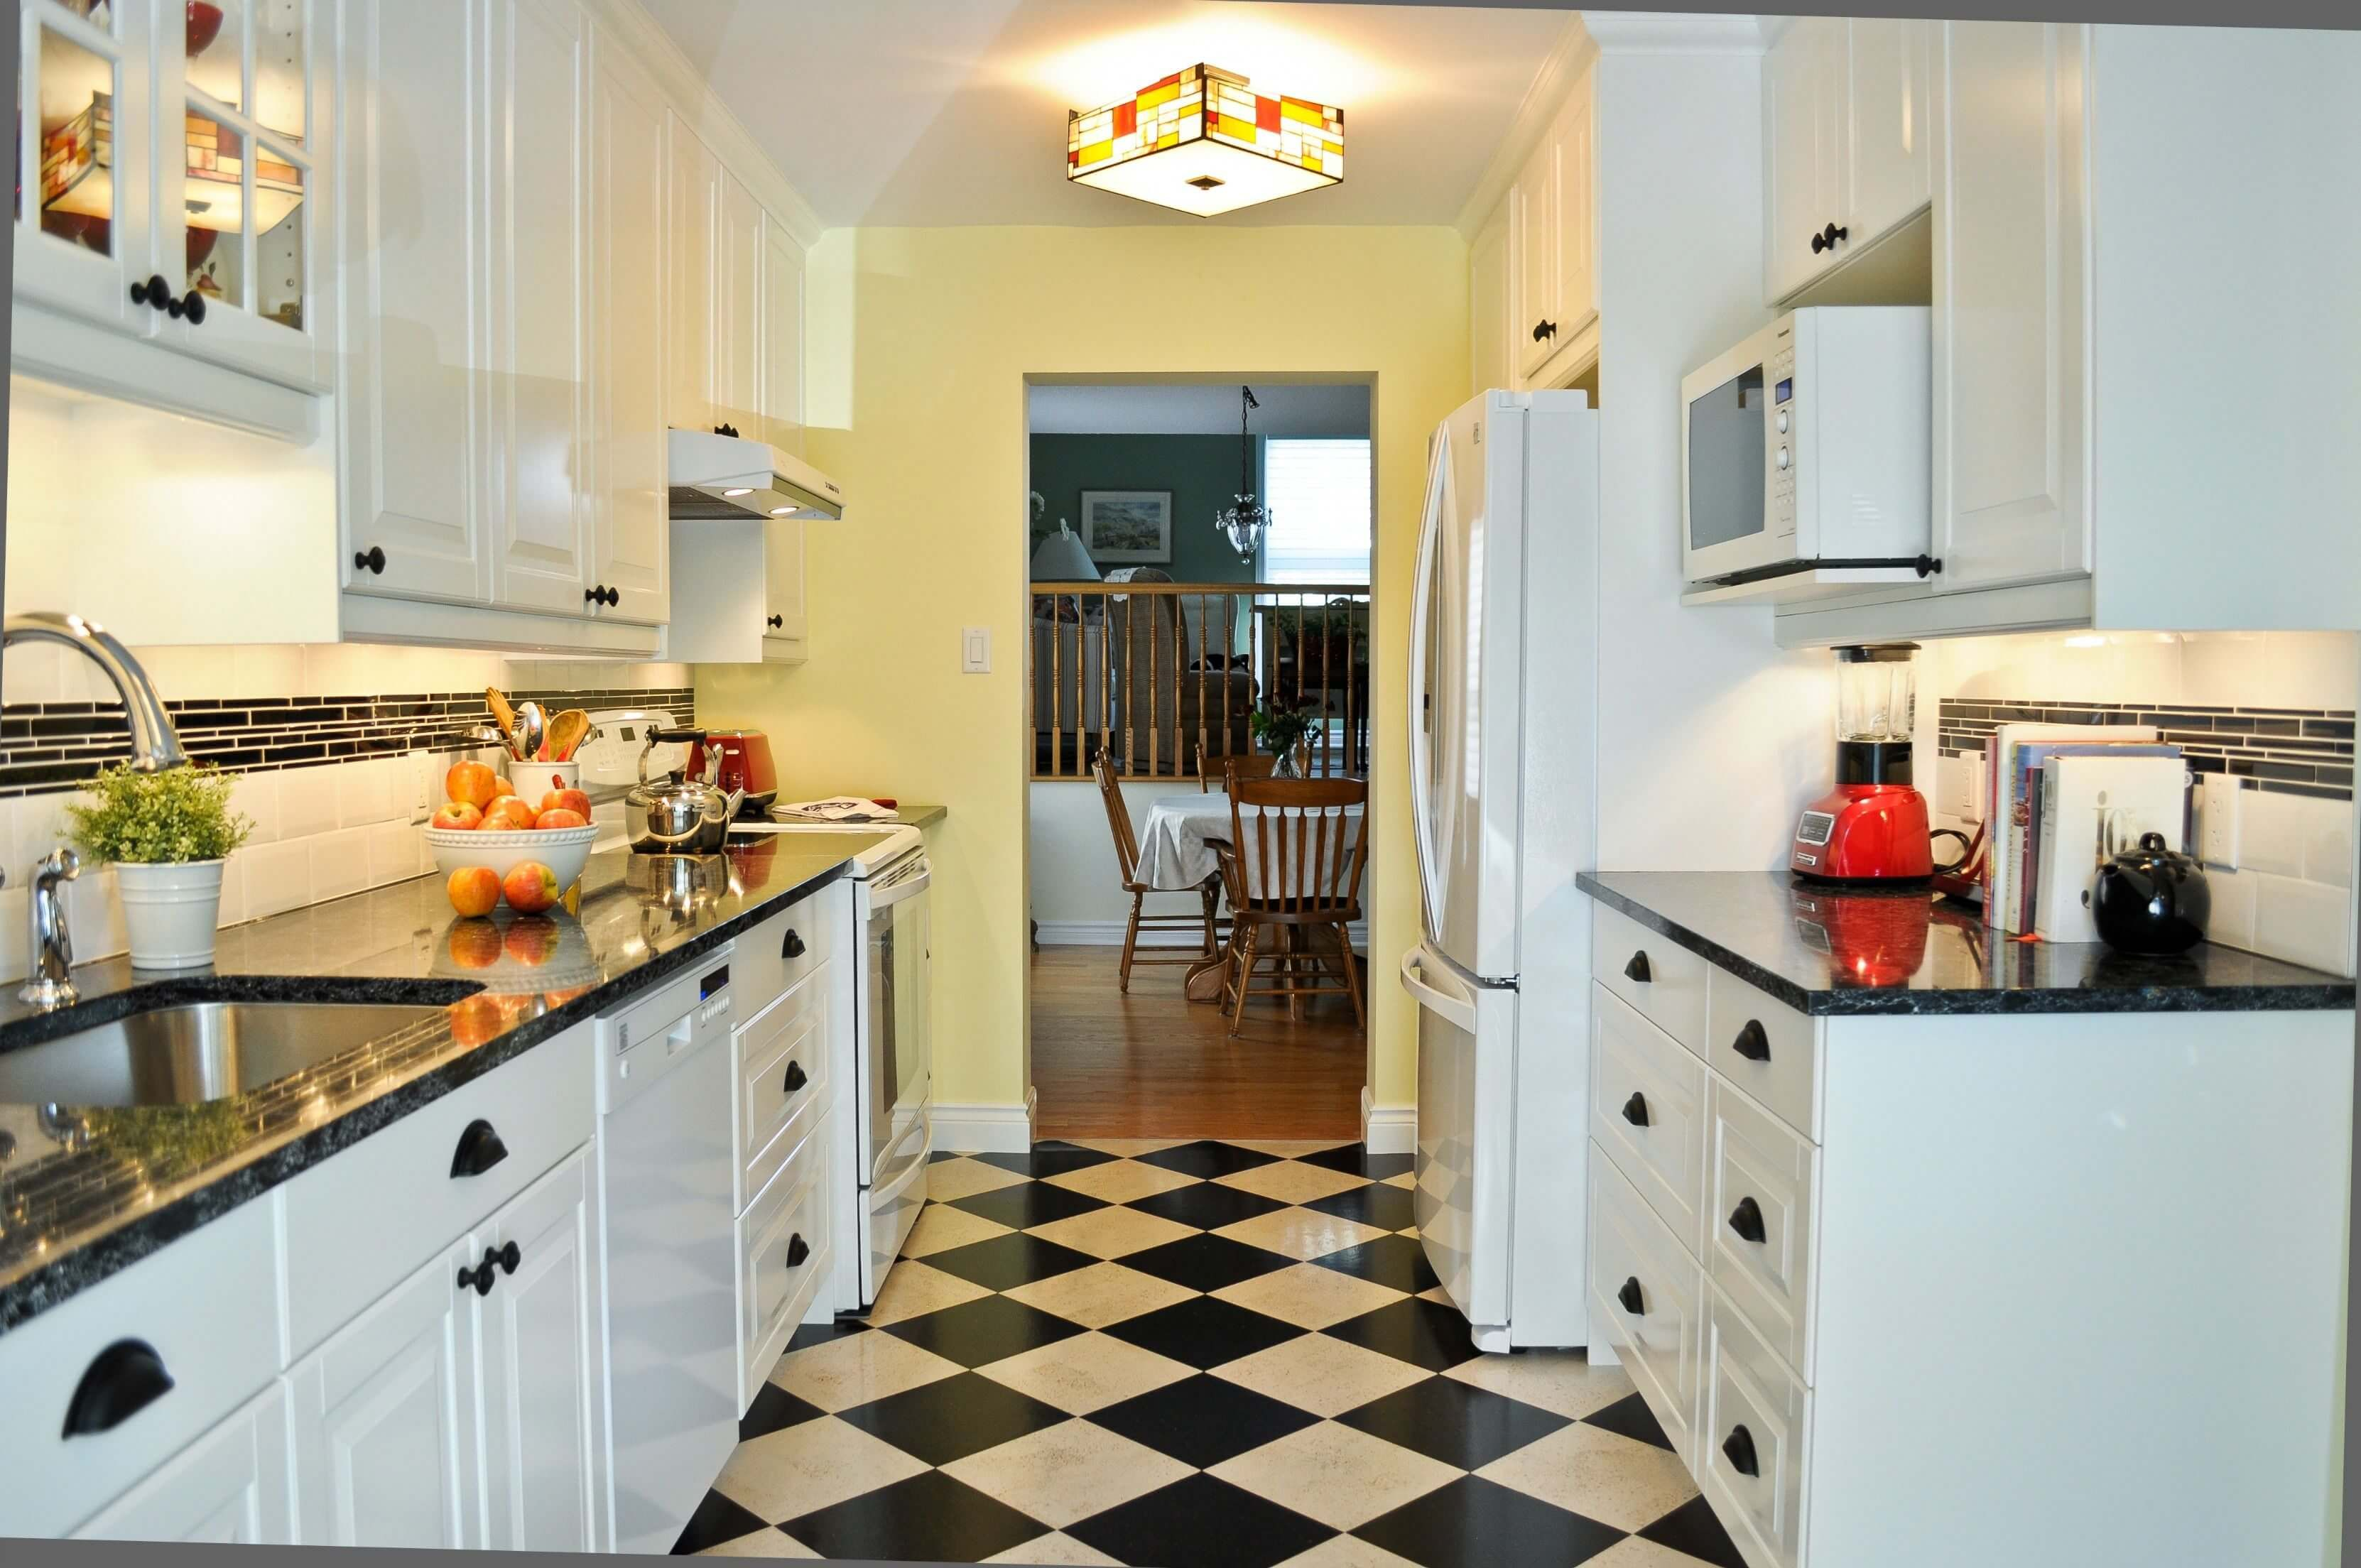 Getting into the spirit of the day is easy in a kitchen renovation